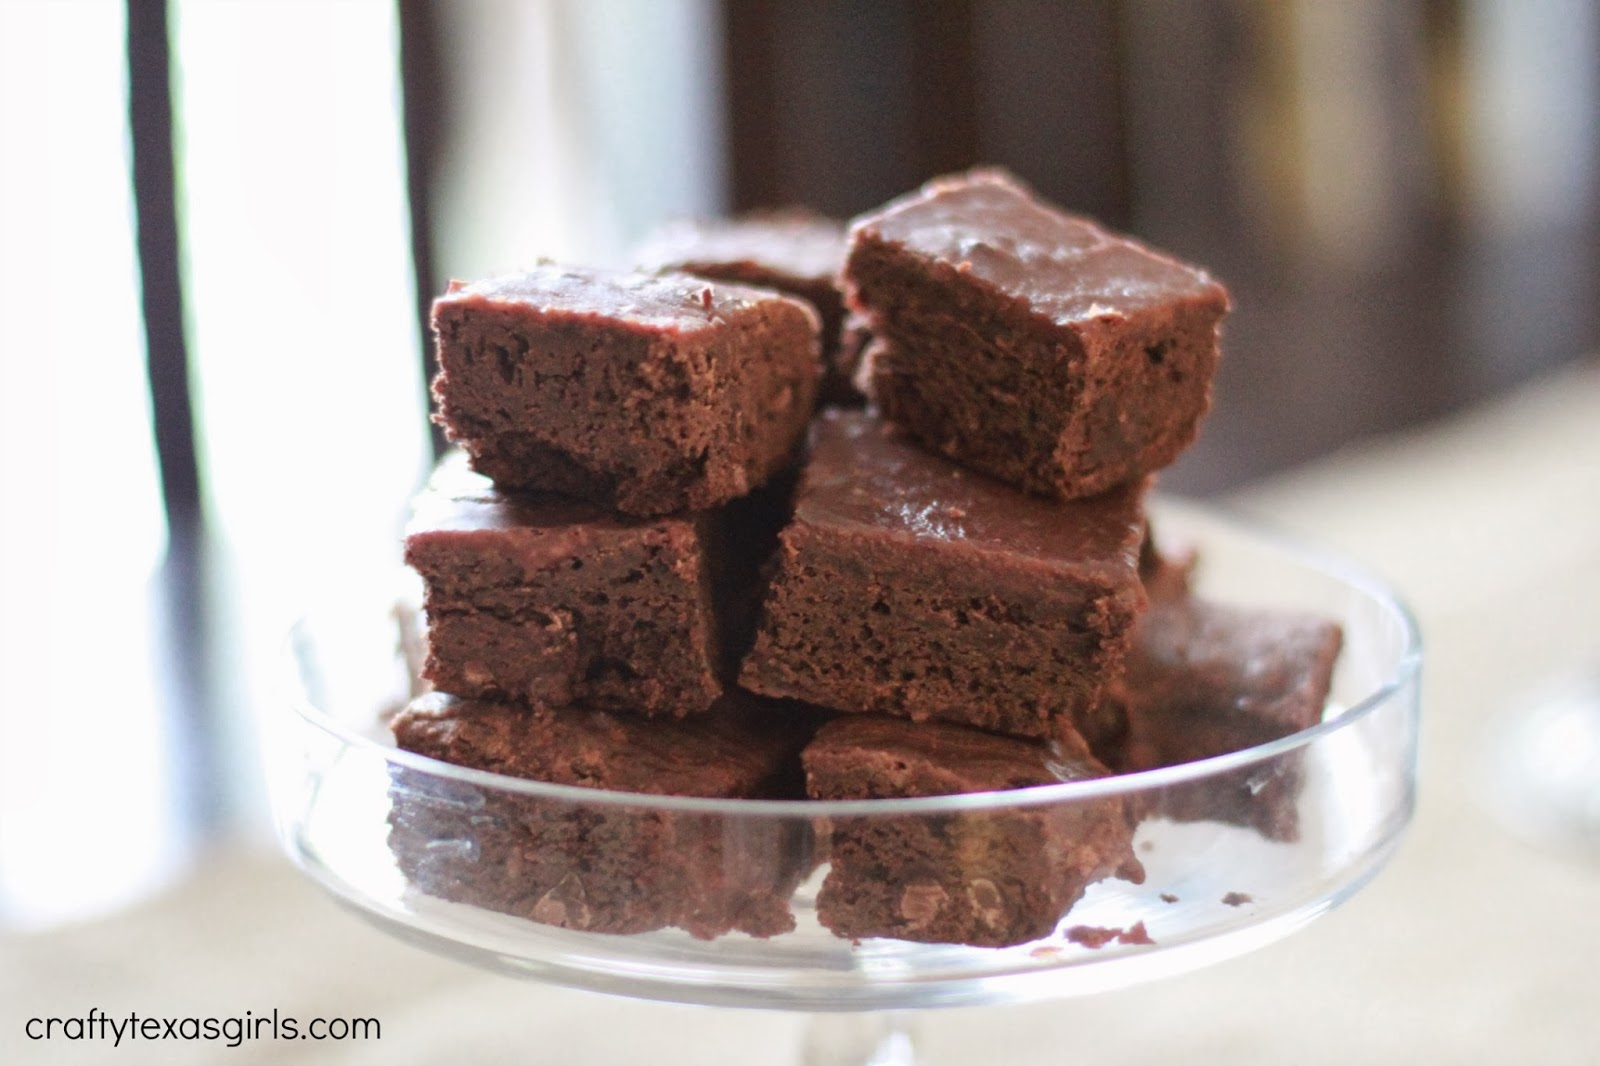 Crafty Texas Girls: The Best Brownies We Ever Made